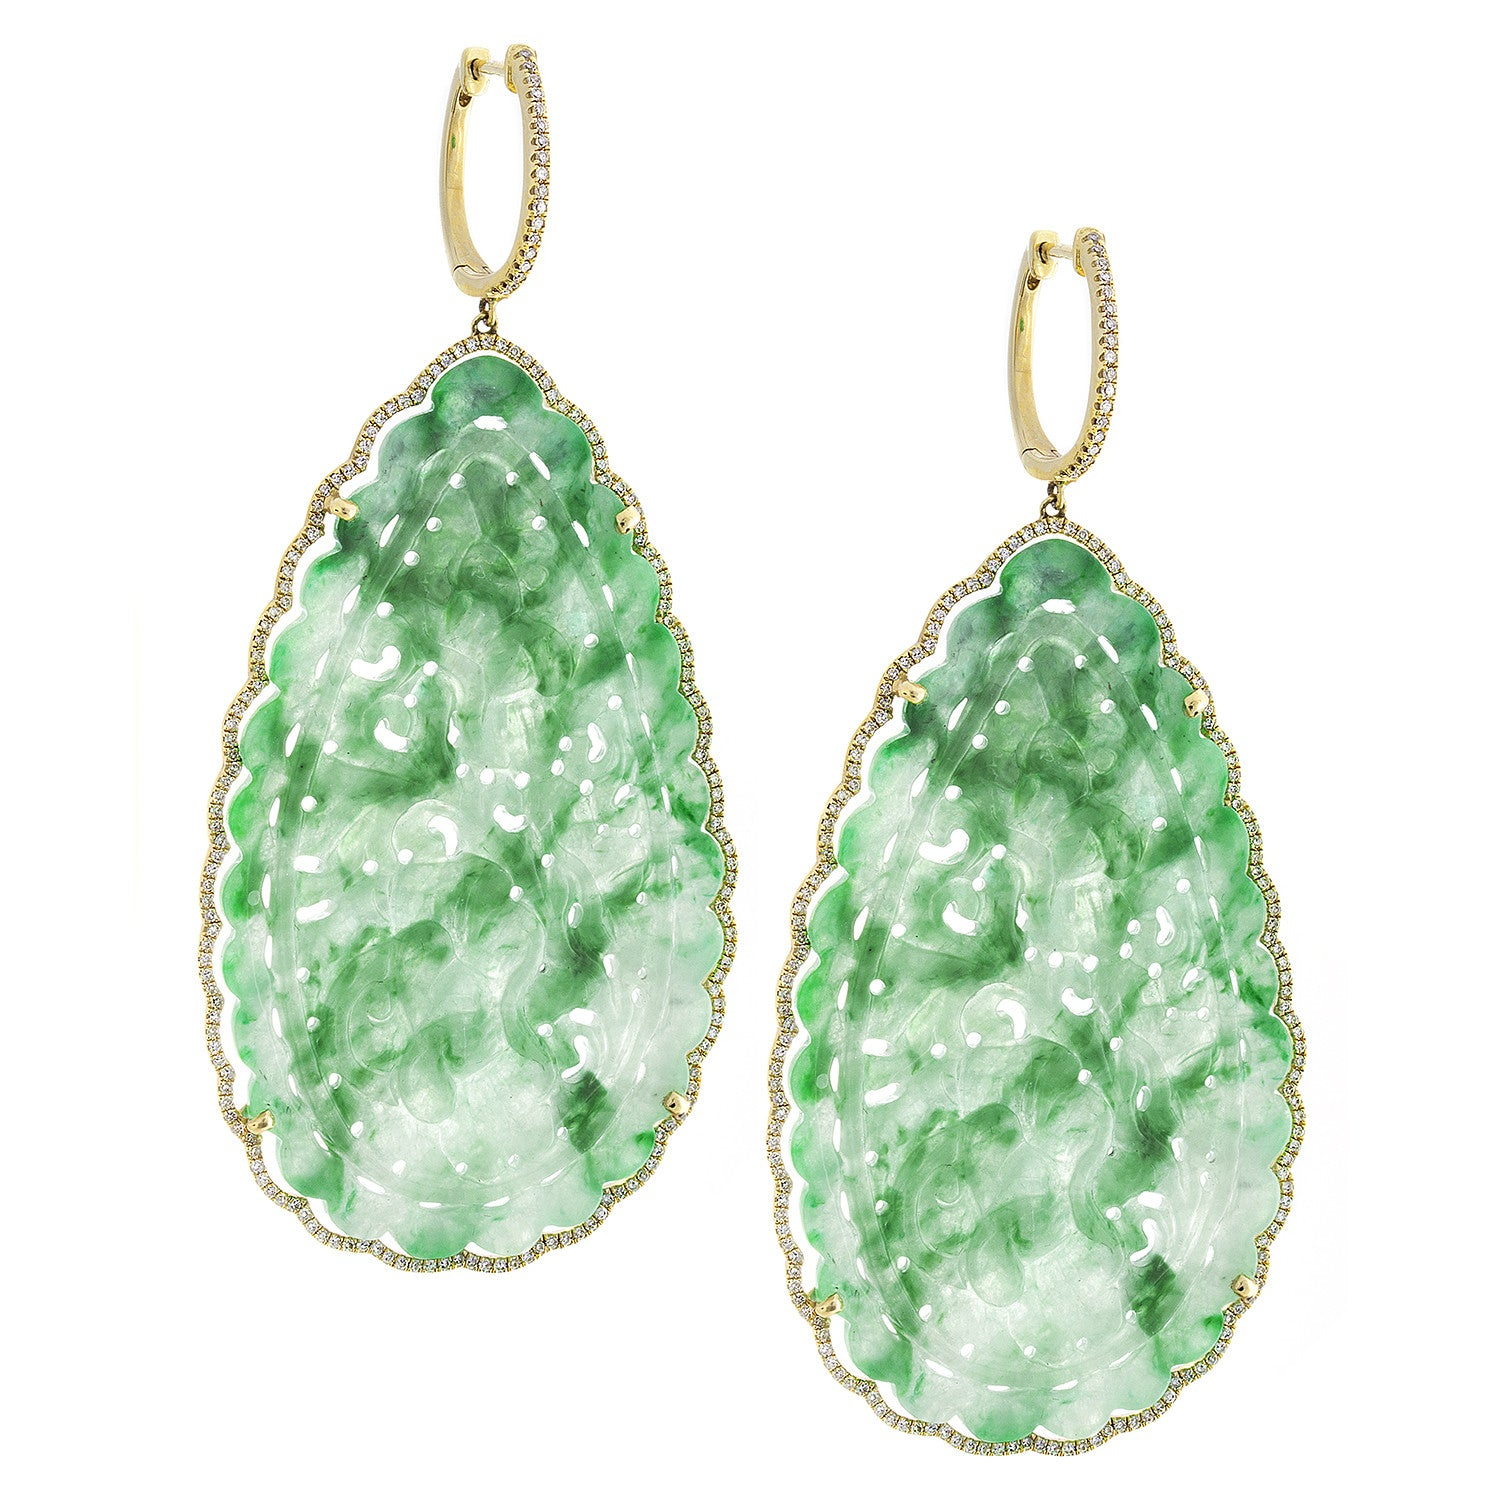 Jade, Diamond & 14K Yellow Gold Drop Earrings - SOLD/CAN BE SPECIAL ORDERED WITH 4-6 WEEKS DELIVERY TIME FRAME